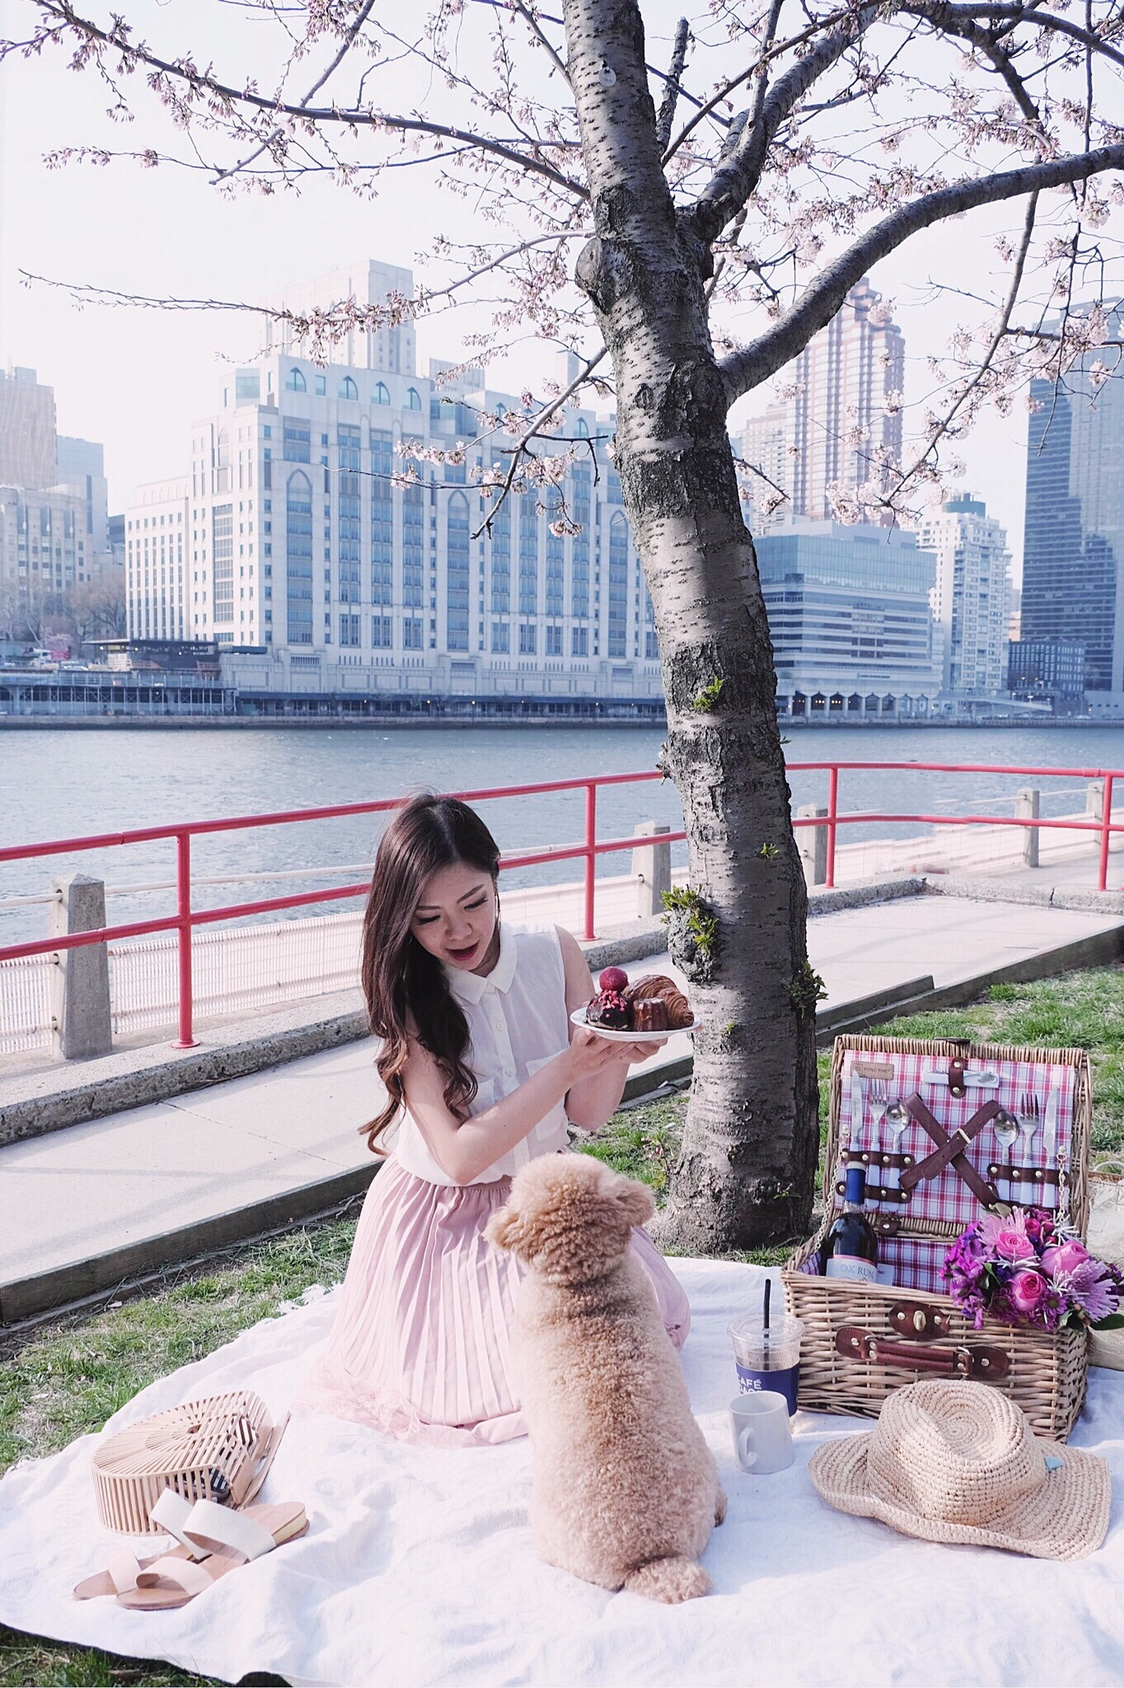 roosevelt island cherry blossom viewing picnic pup